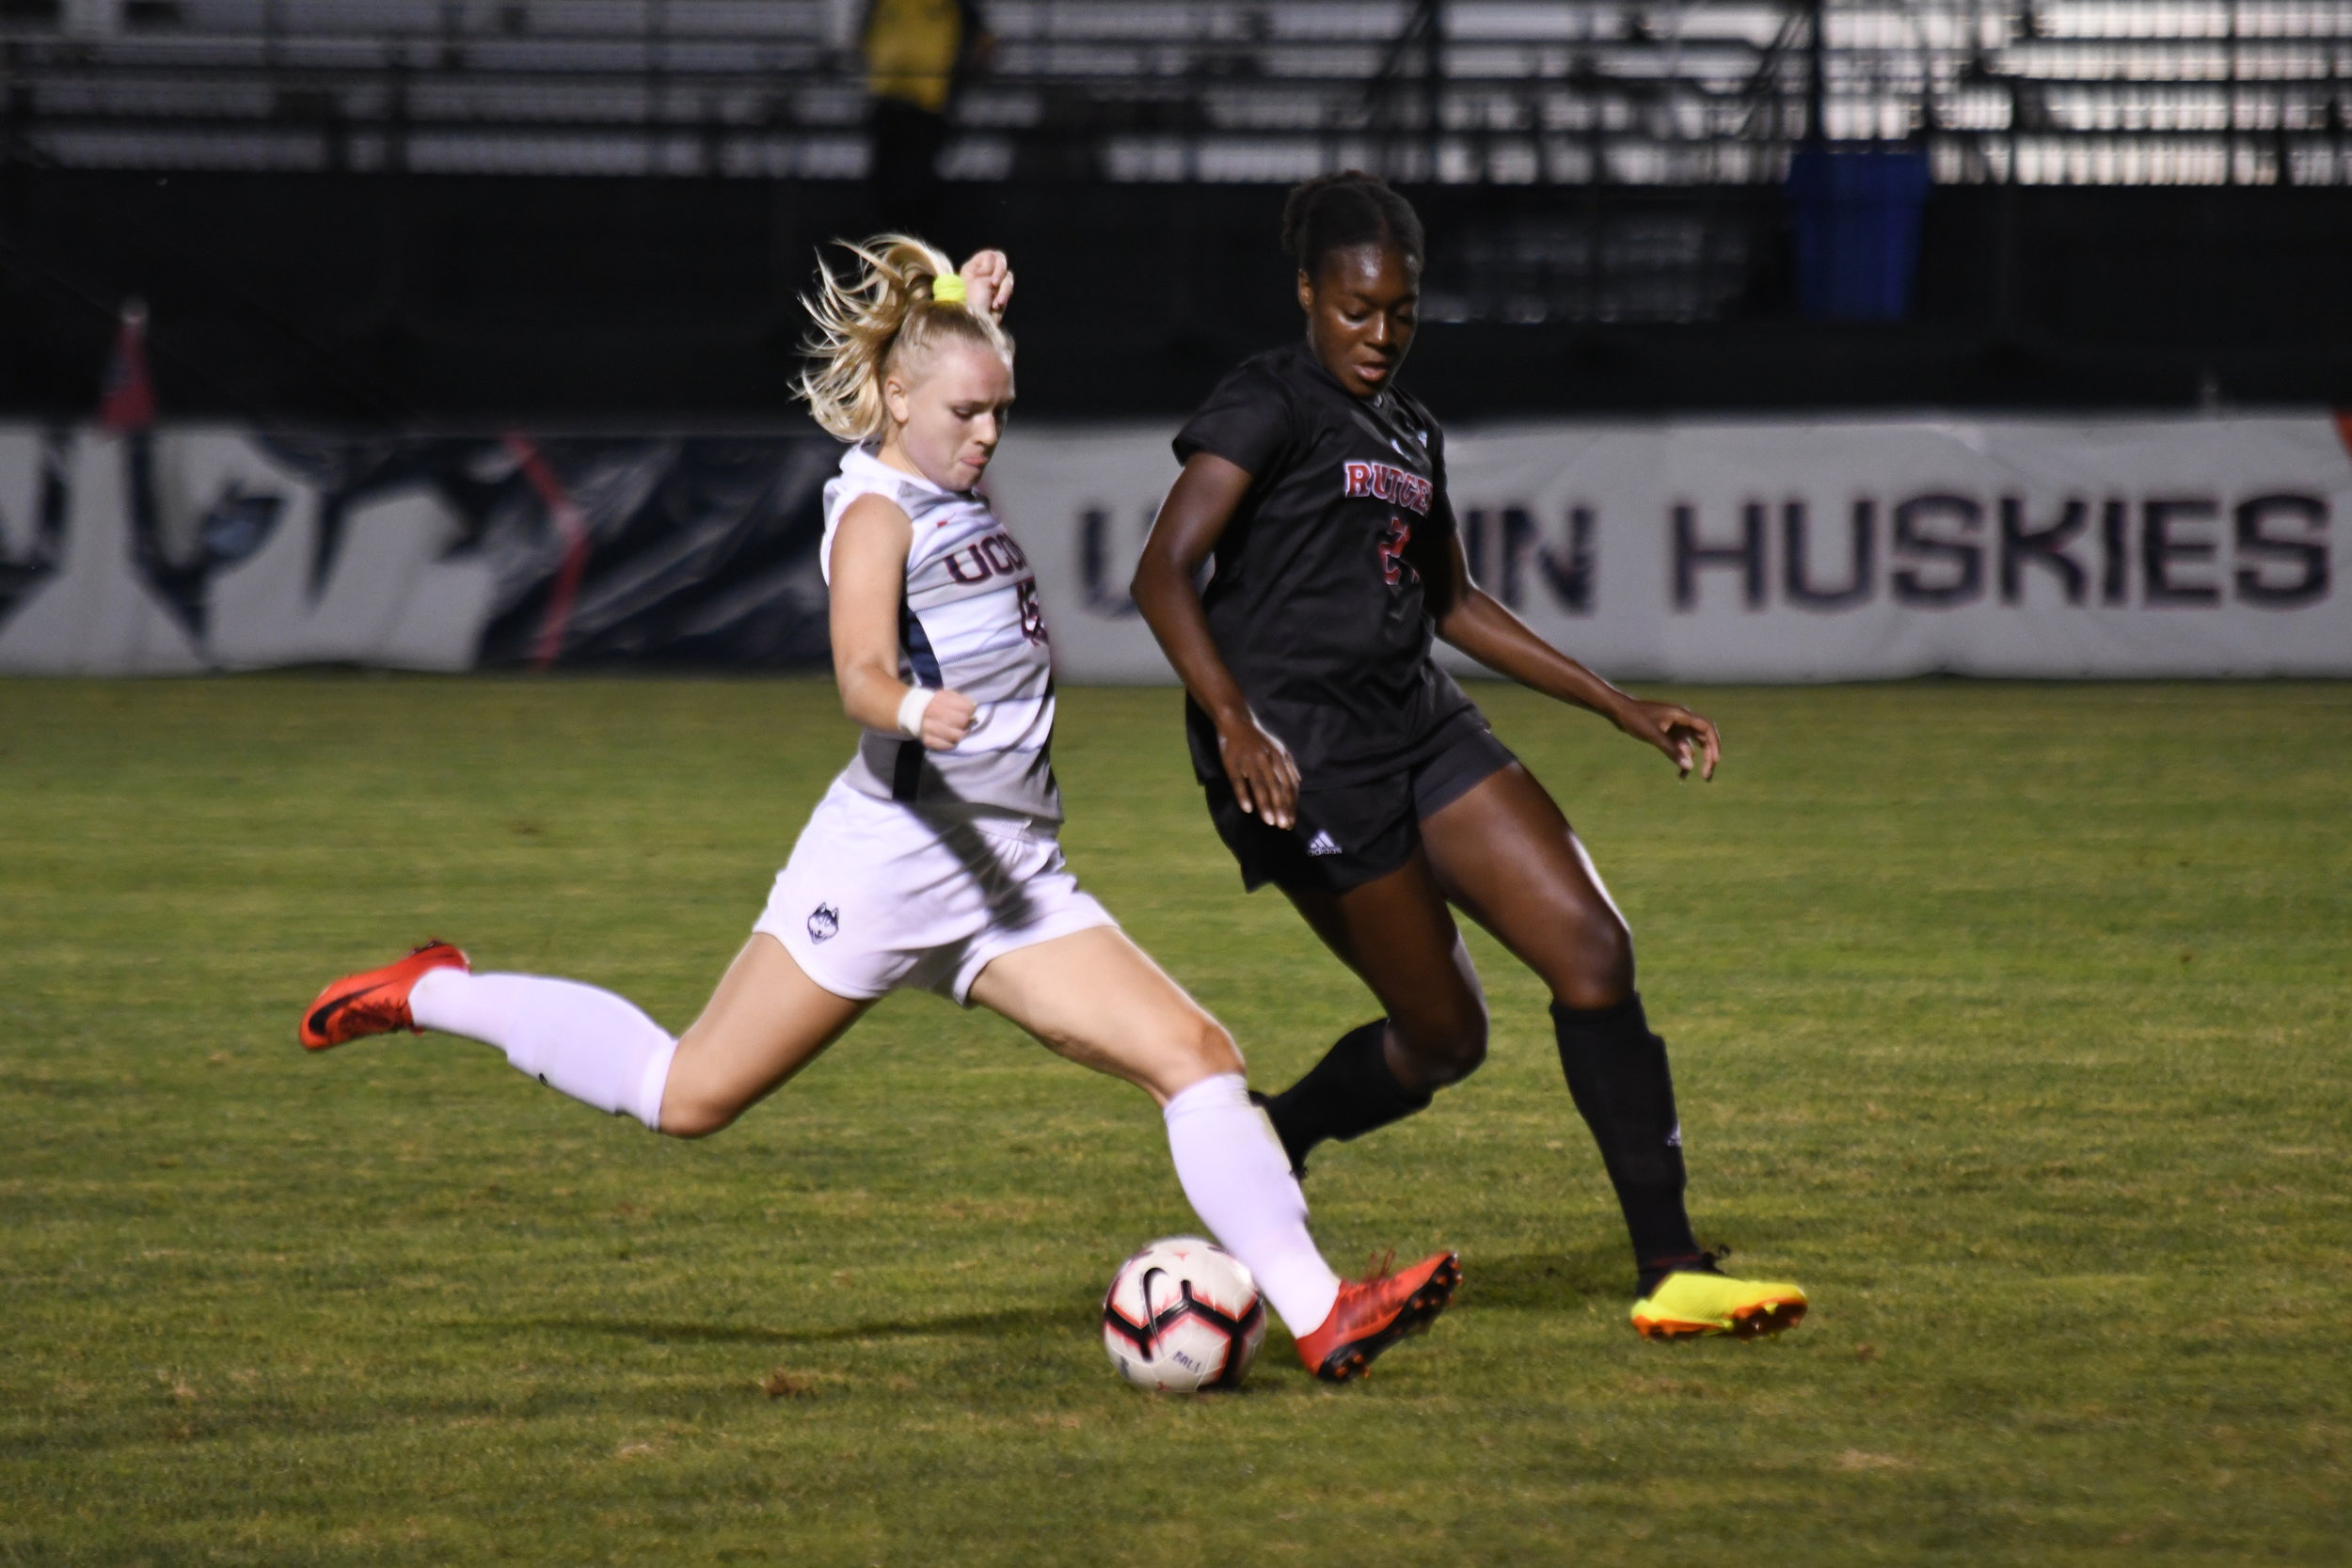 UConn Women's Soccer lost 3-0 against Rutgers at Morrone Stadium Thursday night. UConn defense stopped Rutgers from scoring in the second half. (Photo by Nicholas Hampton)